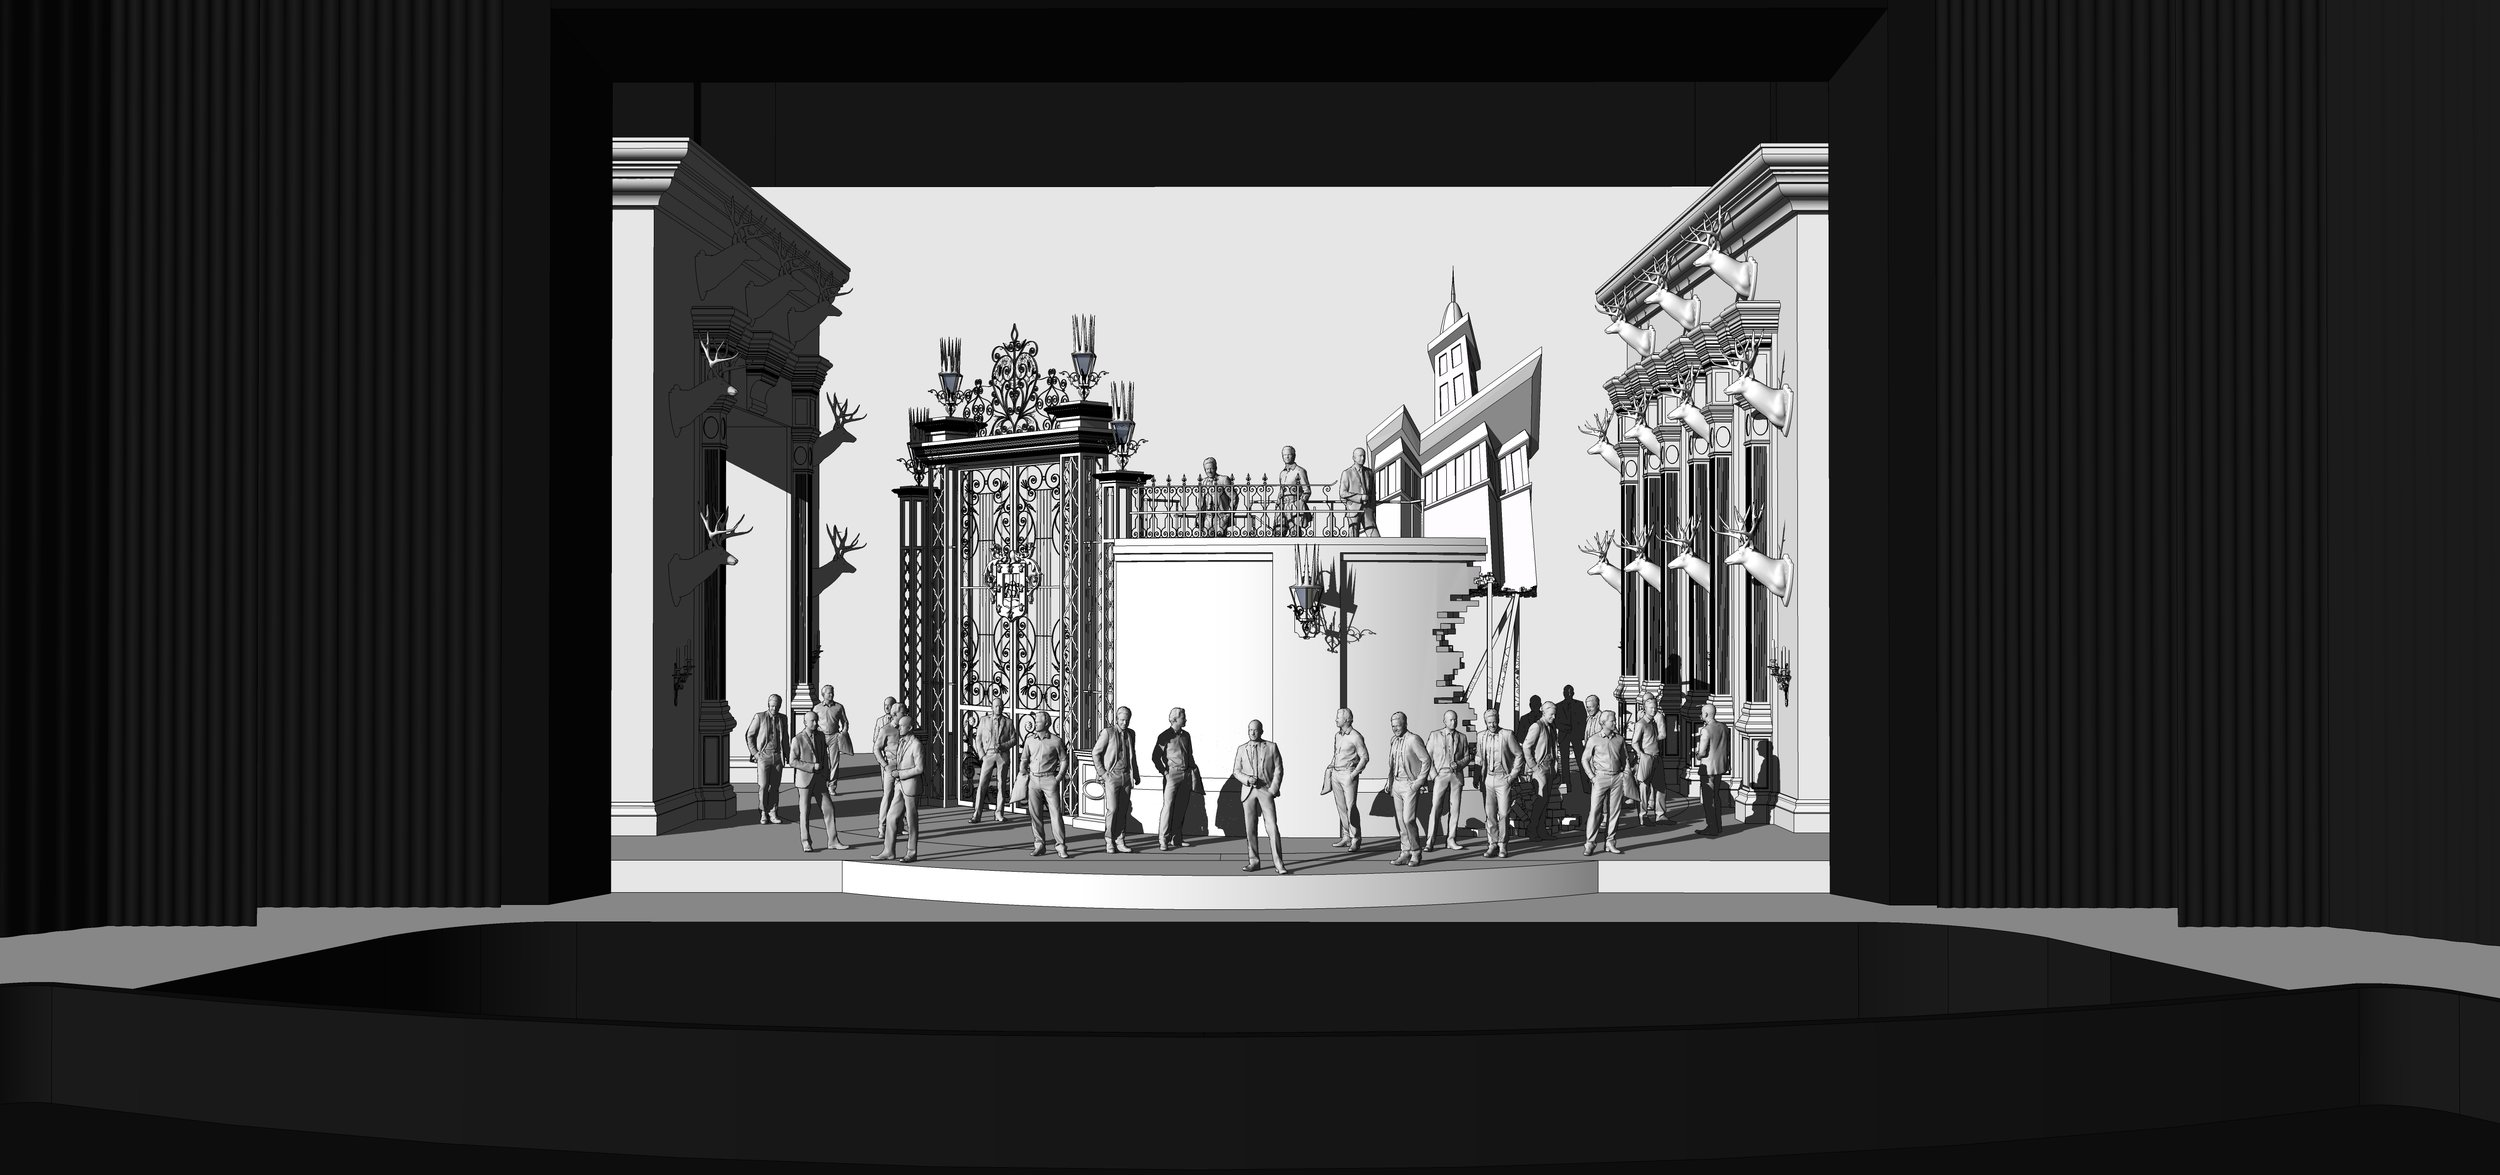 FINAL DESIGN | Act 1 Scene 1 - The Grounds Near Ravenswood Castle - SketchUp Model